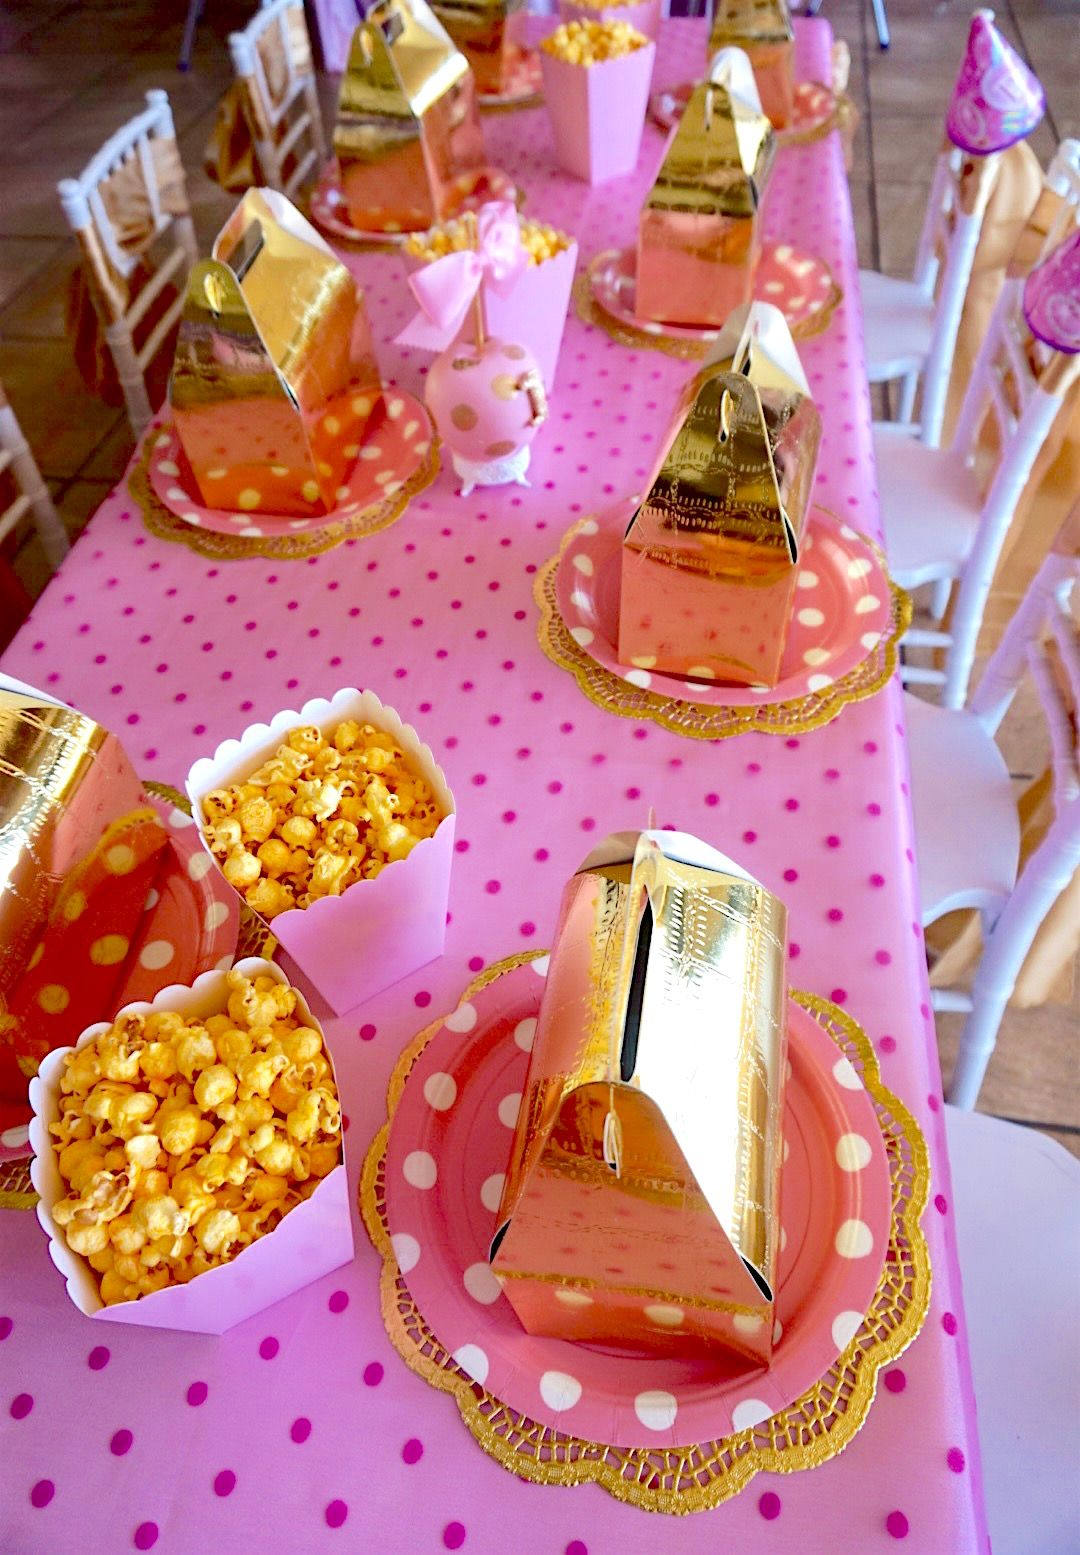 Kids Birthday Table Setting, including Popcorn & Goodie Bags | "|1080|1555|?|en|2|e56c7e8d325407e4704fa5b95984b433|False|UNLIKELY|0.3440214693546295